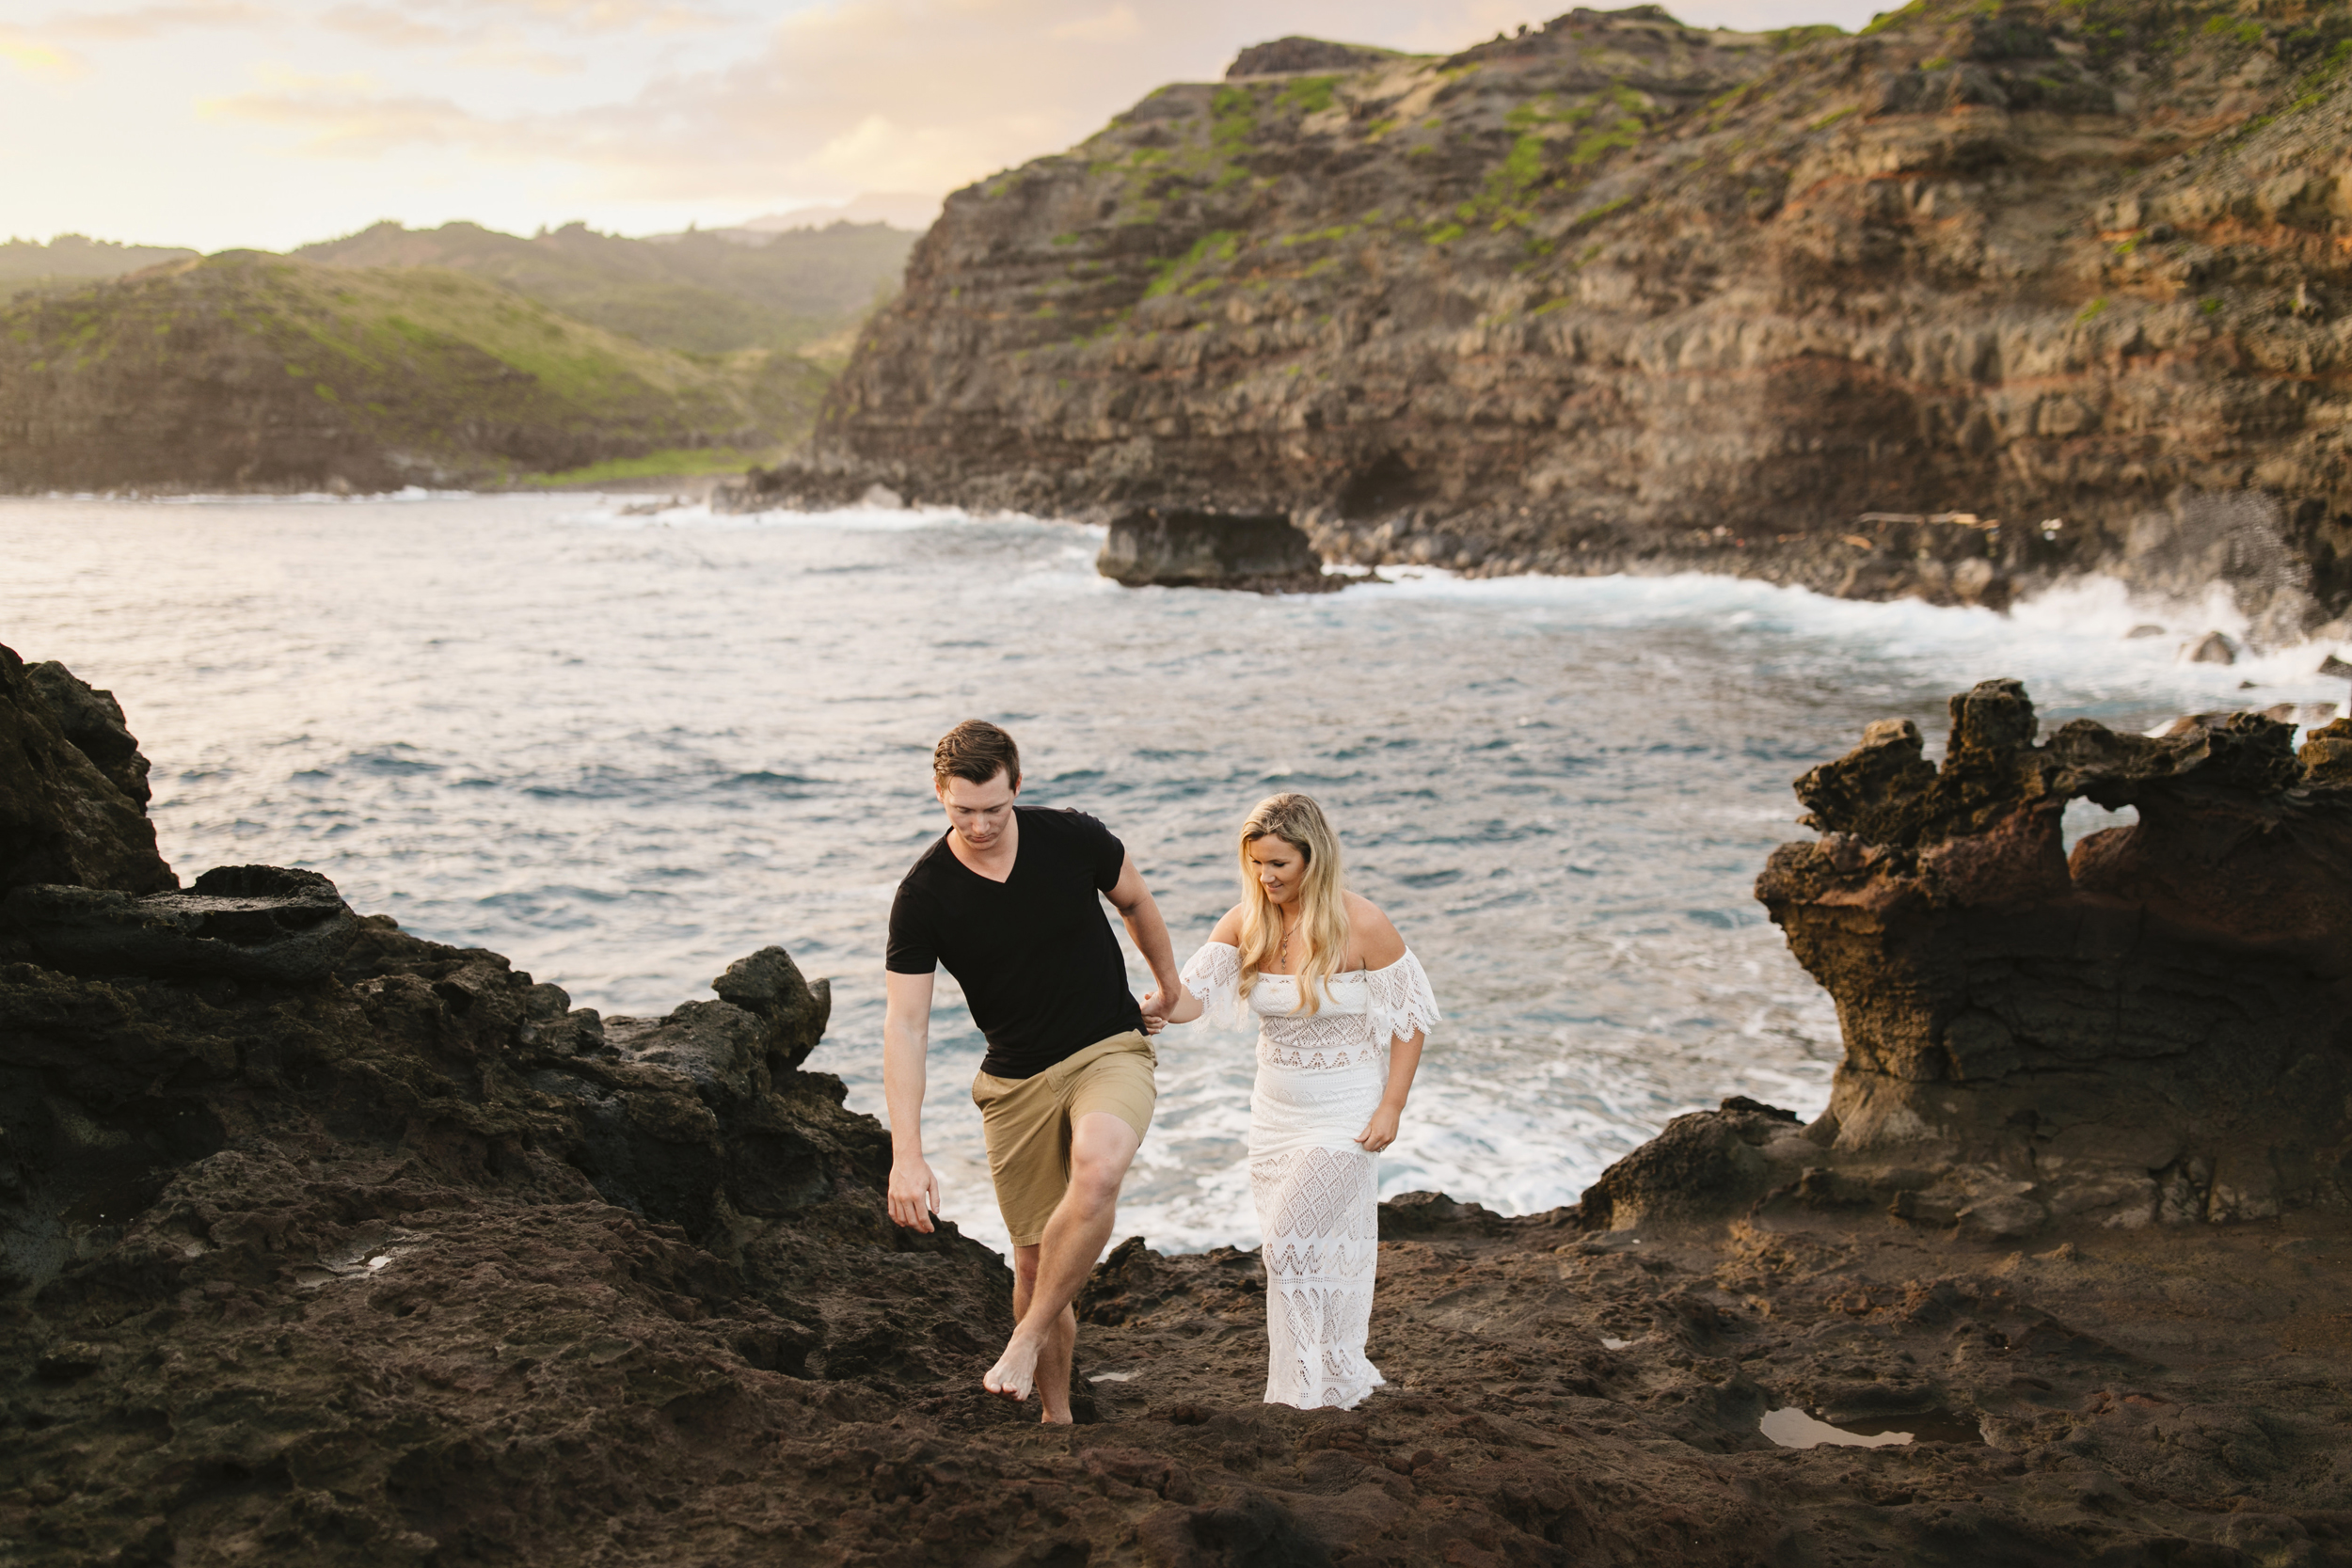 An adventurous couple explores Maui during their engagement session with hawaii elopement photographer Colby and Jess